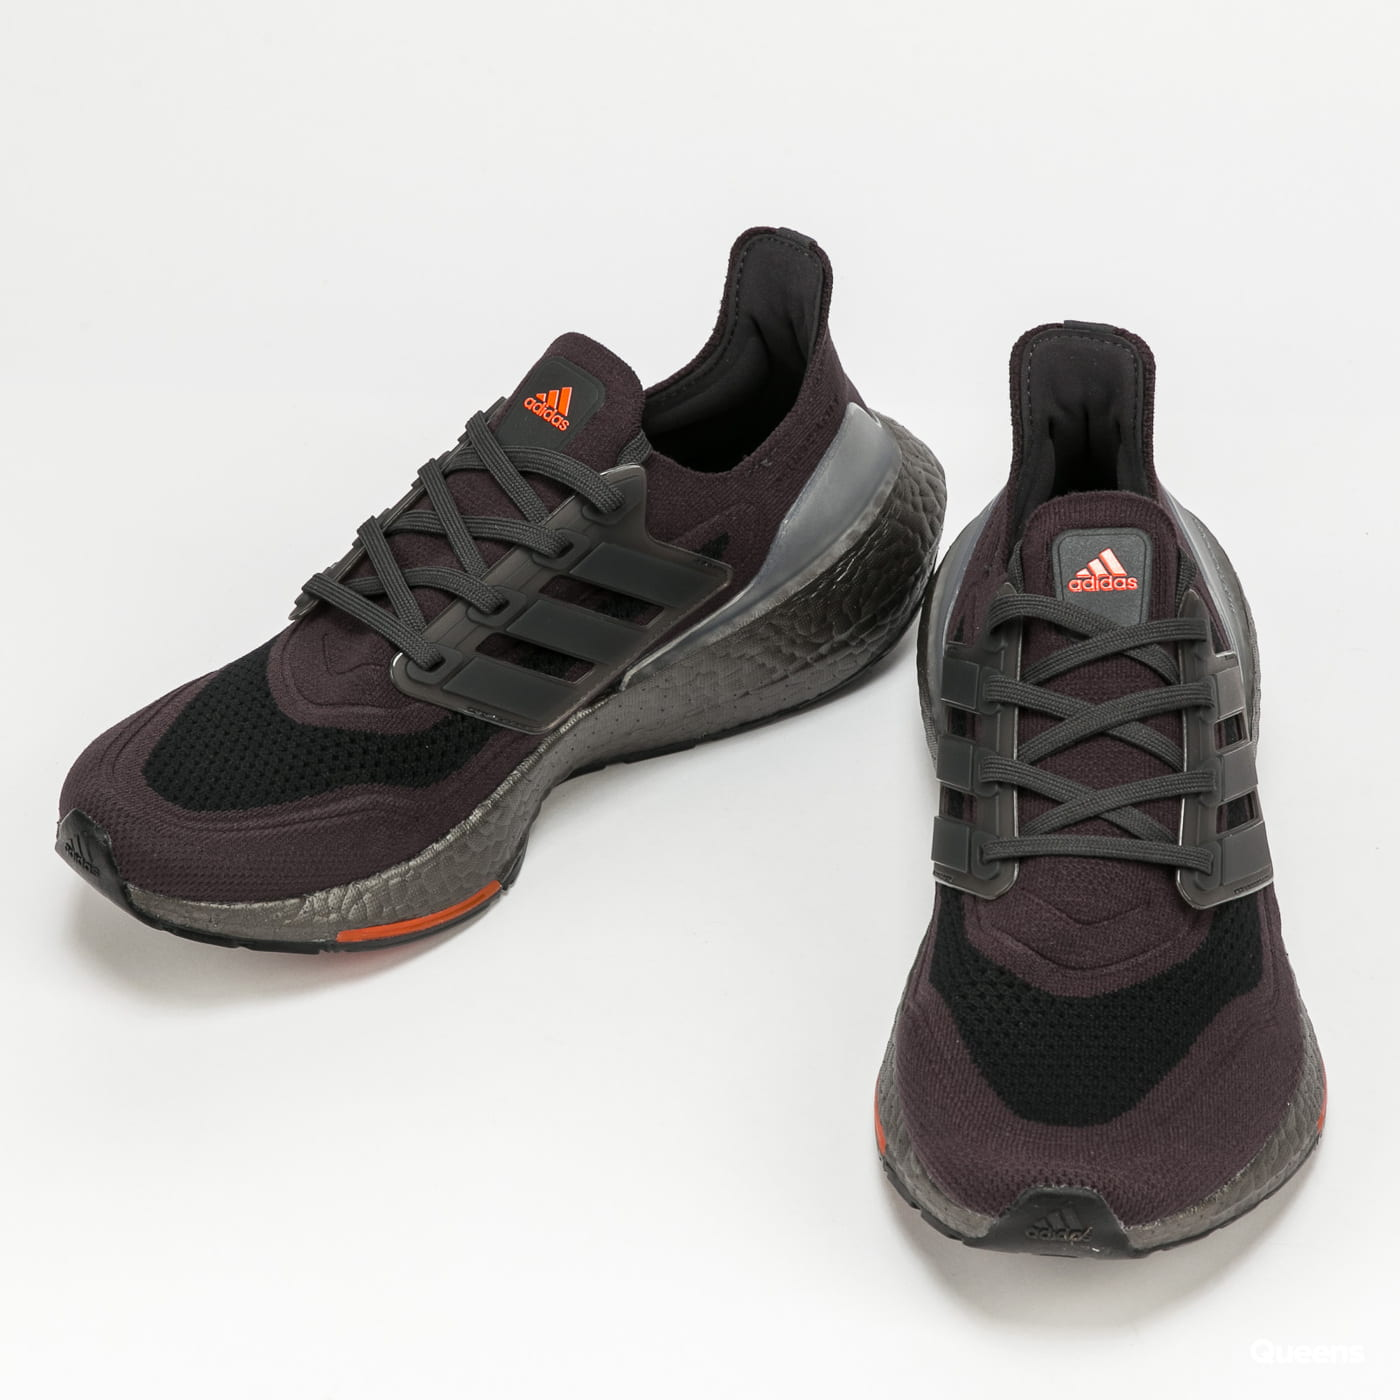 adidas Performance Ultraboost 21 carbon / carbon / solred